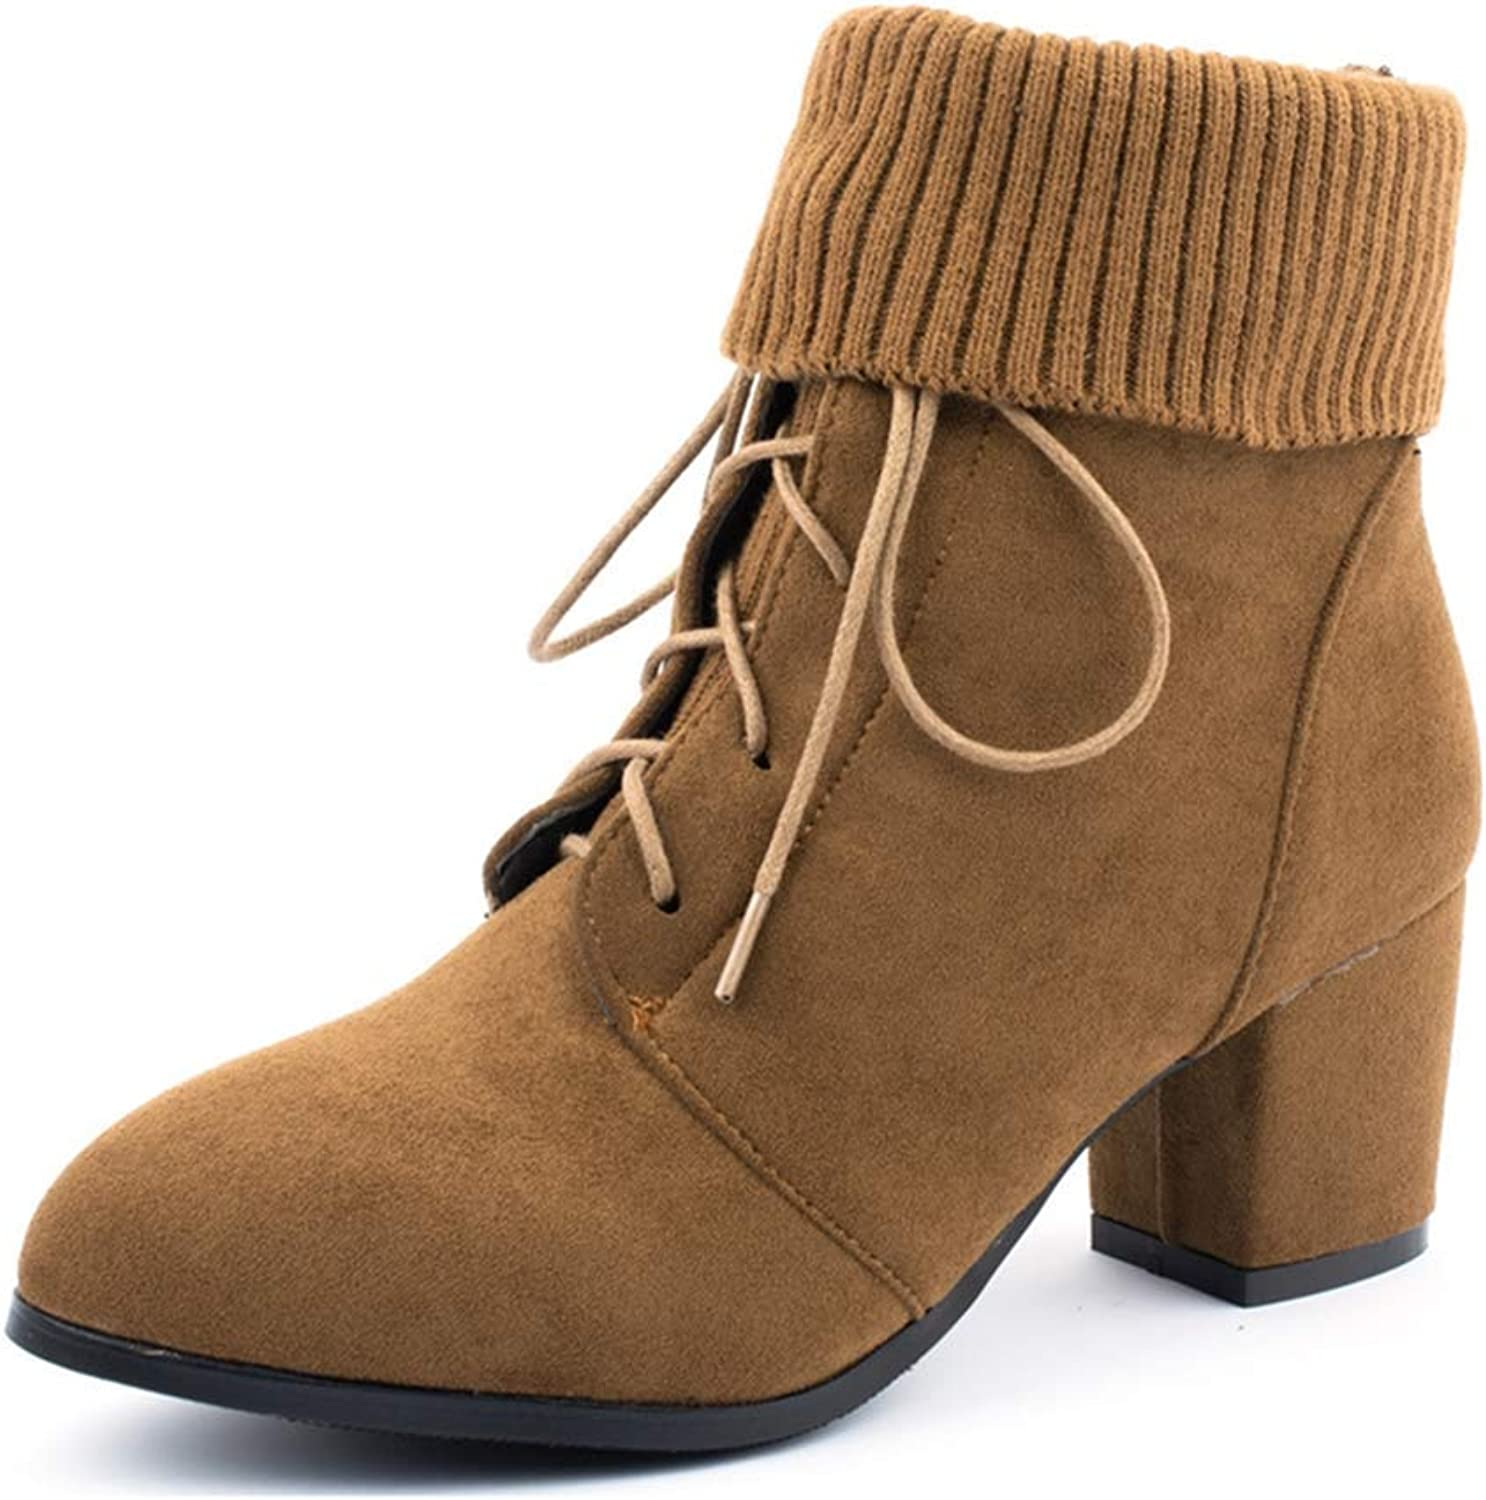 Fashion shoesbox Women's Lace Up Dress Ankle Boots Pointed Toe Suede Casual Bootie Chunky Block Heel Knit Short Boots